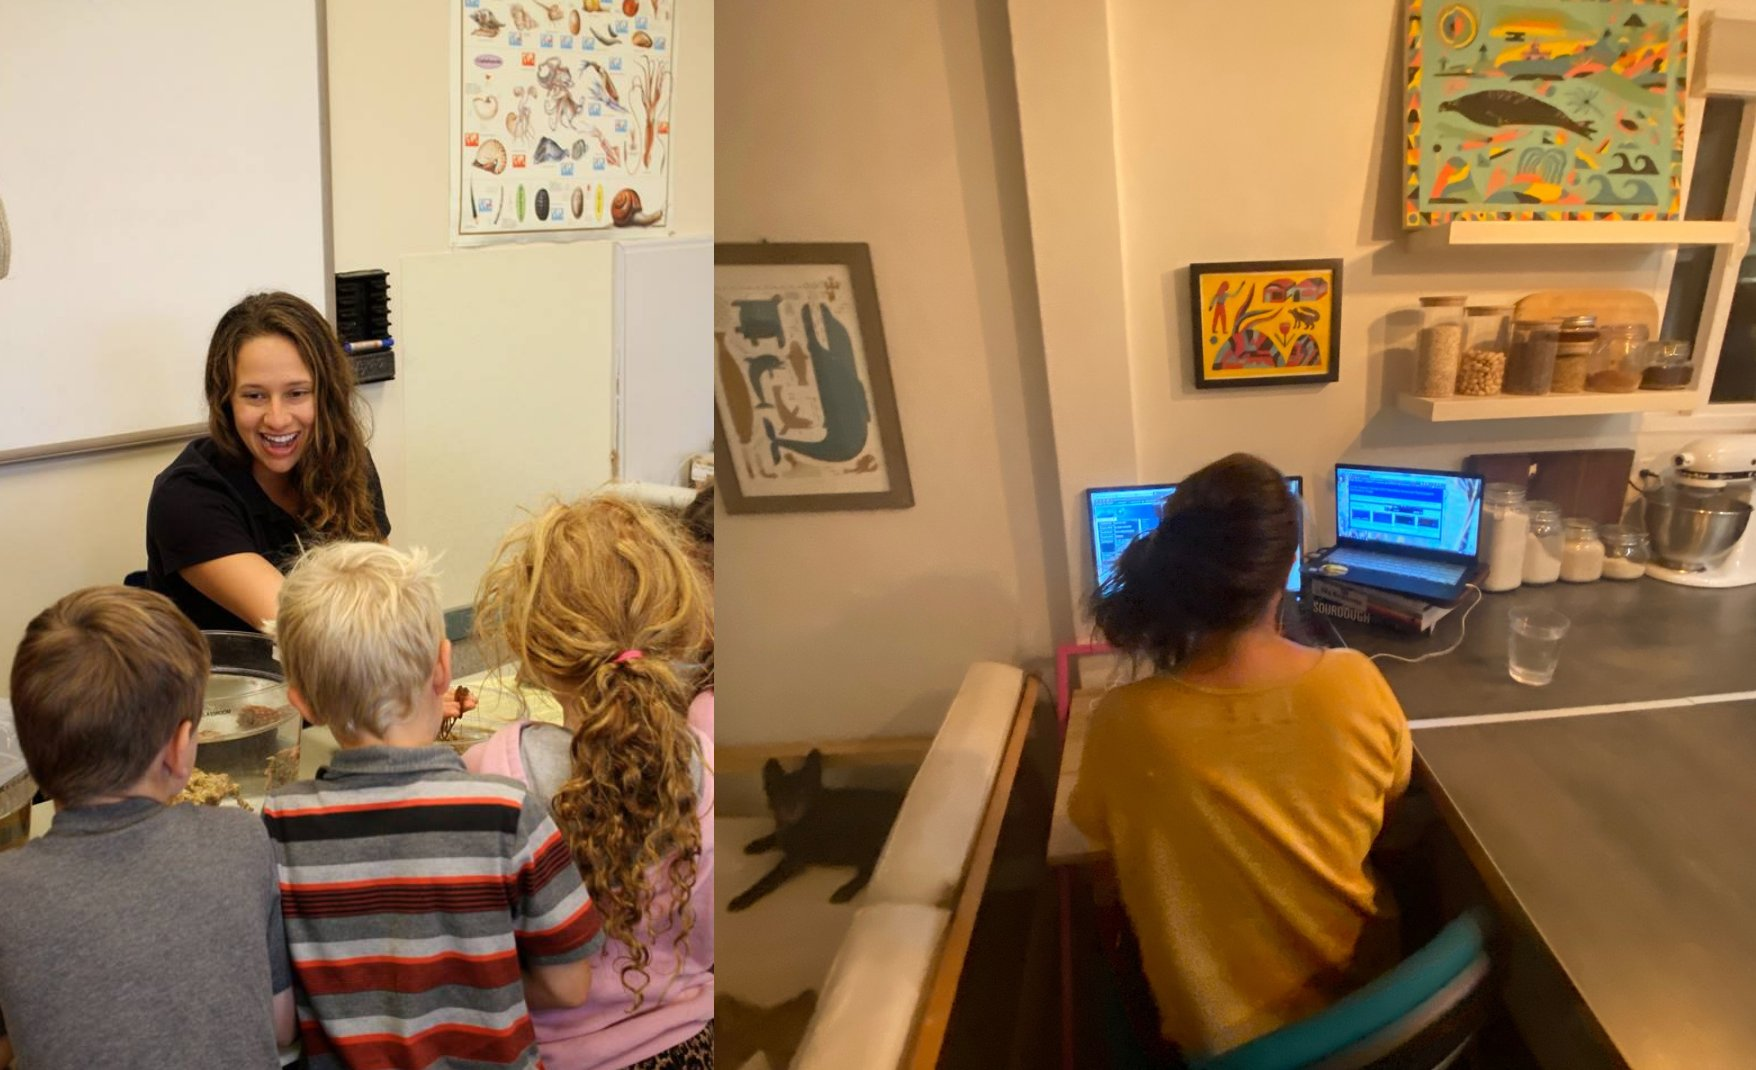 A side-by-side comparison between hands-on marine science education (pre-covid), and what at-home virtual STEM education looks like.